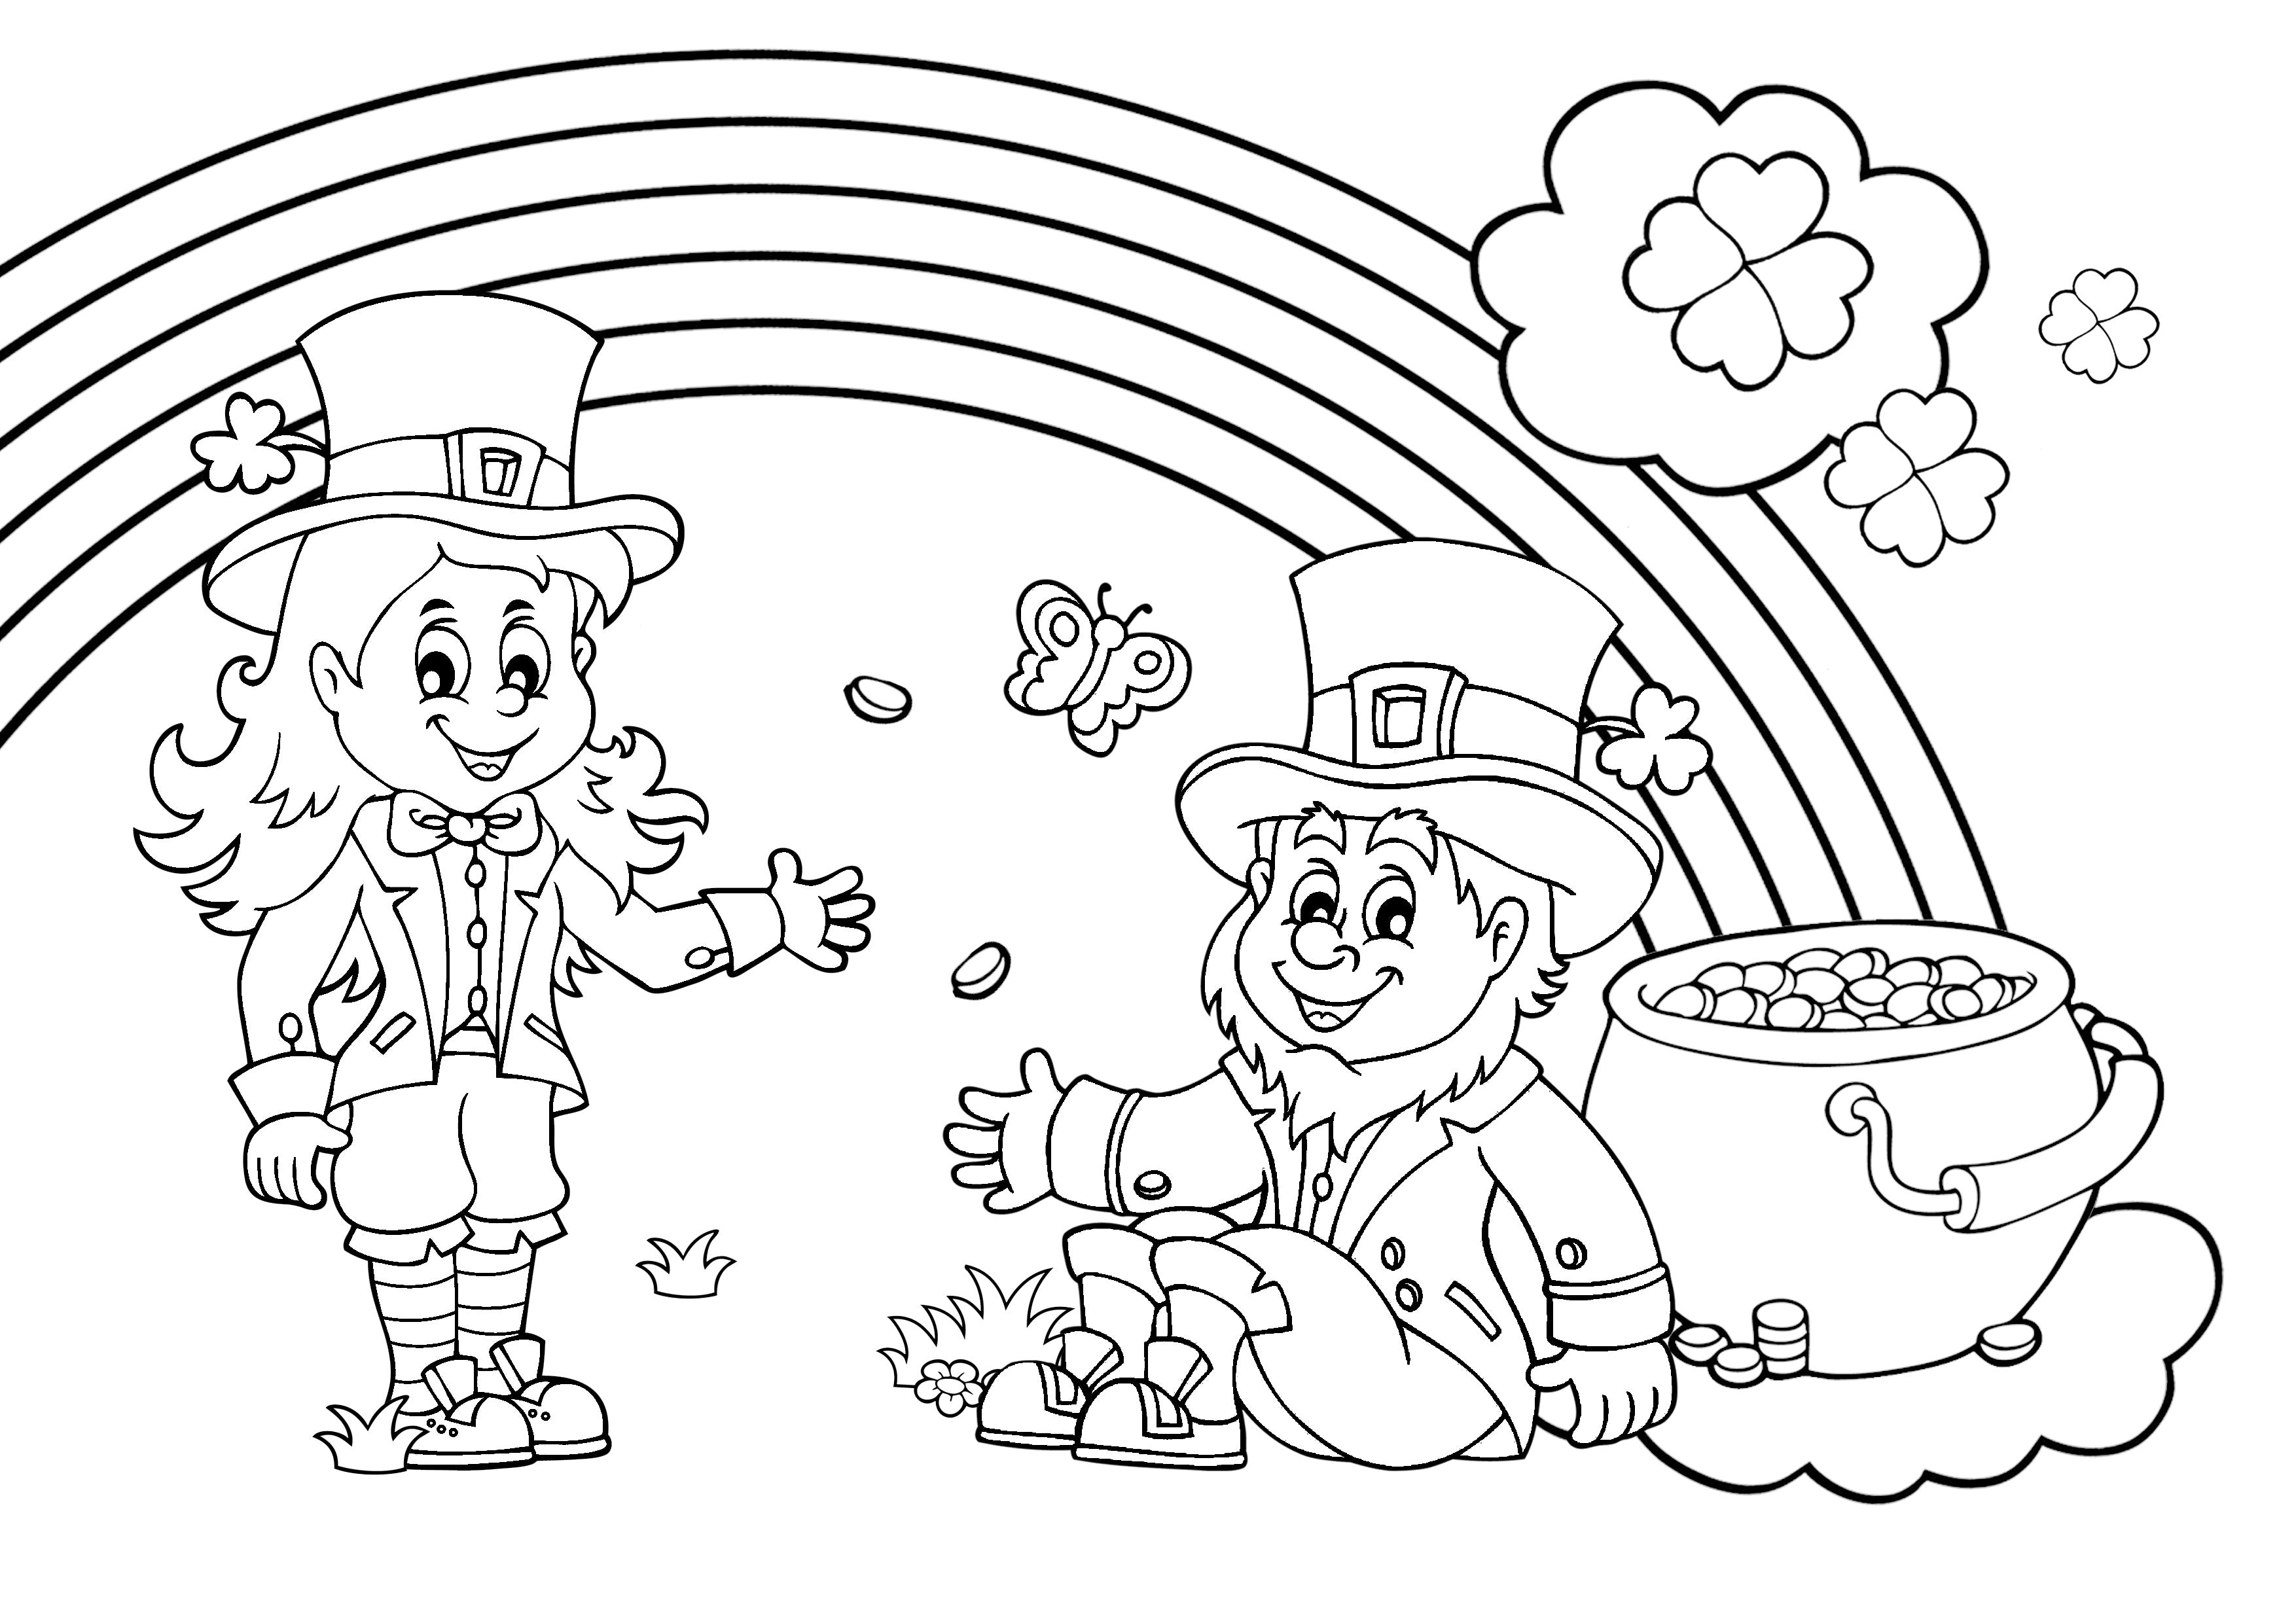 Printable St. Patrick's Day Turtle Coloring Page for Kids – SupplyMe   2480x3508